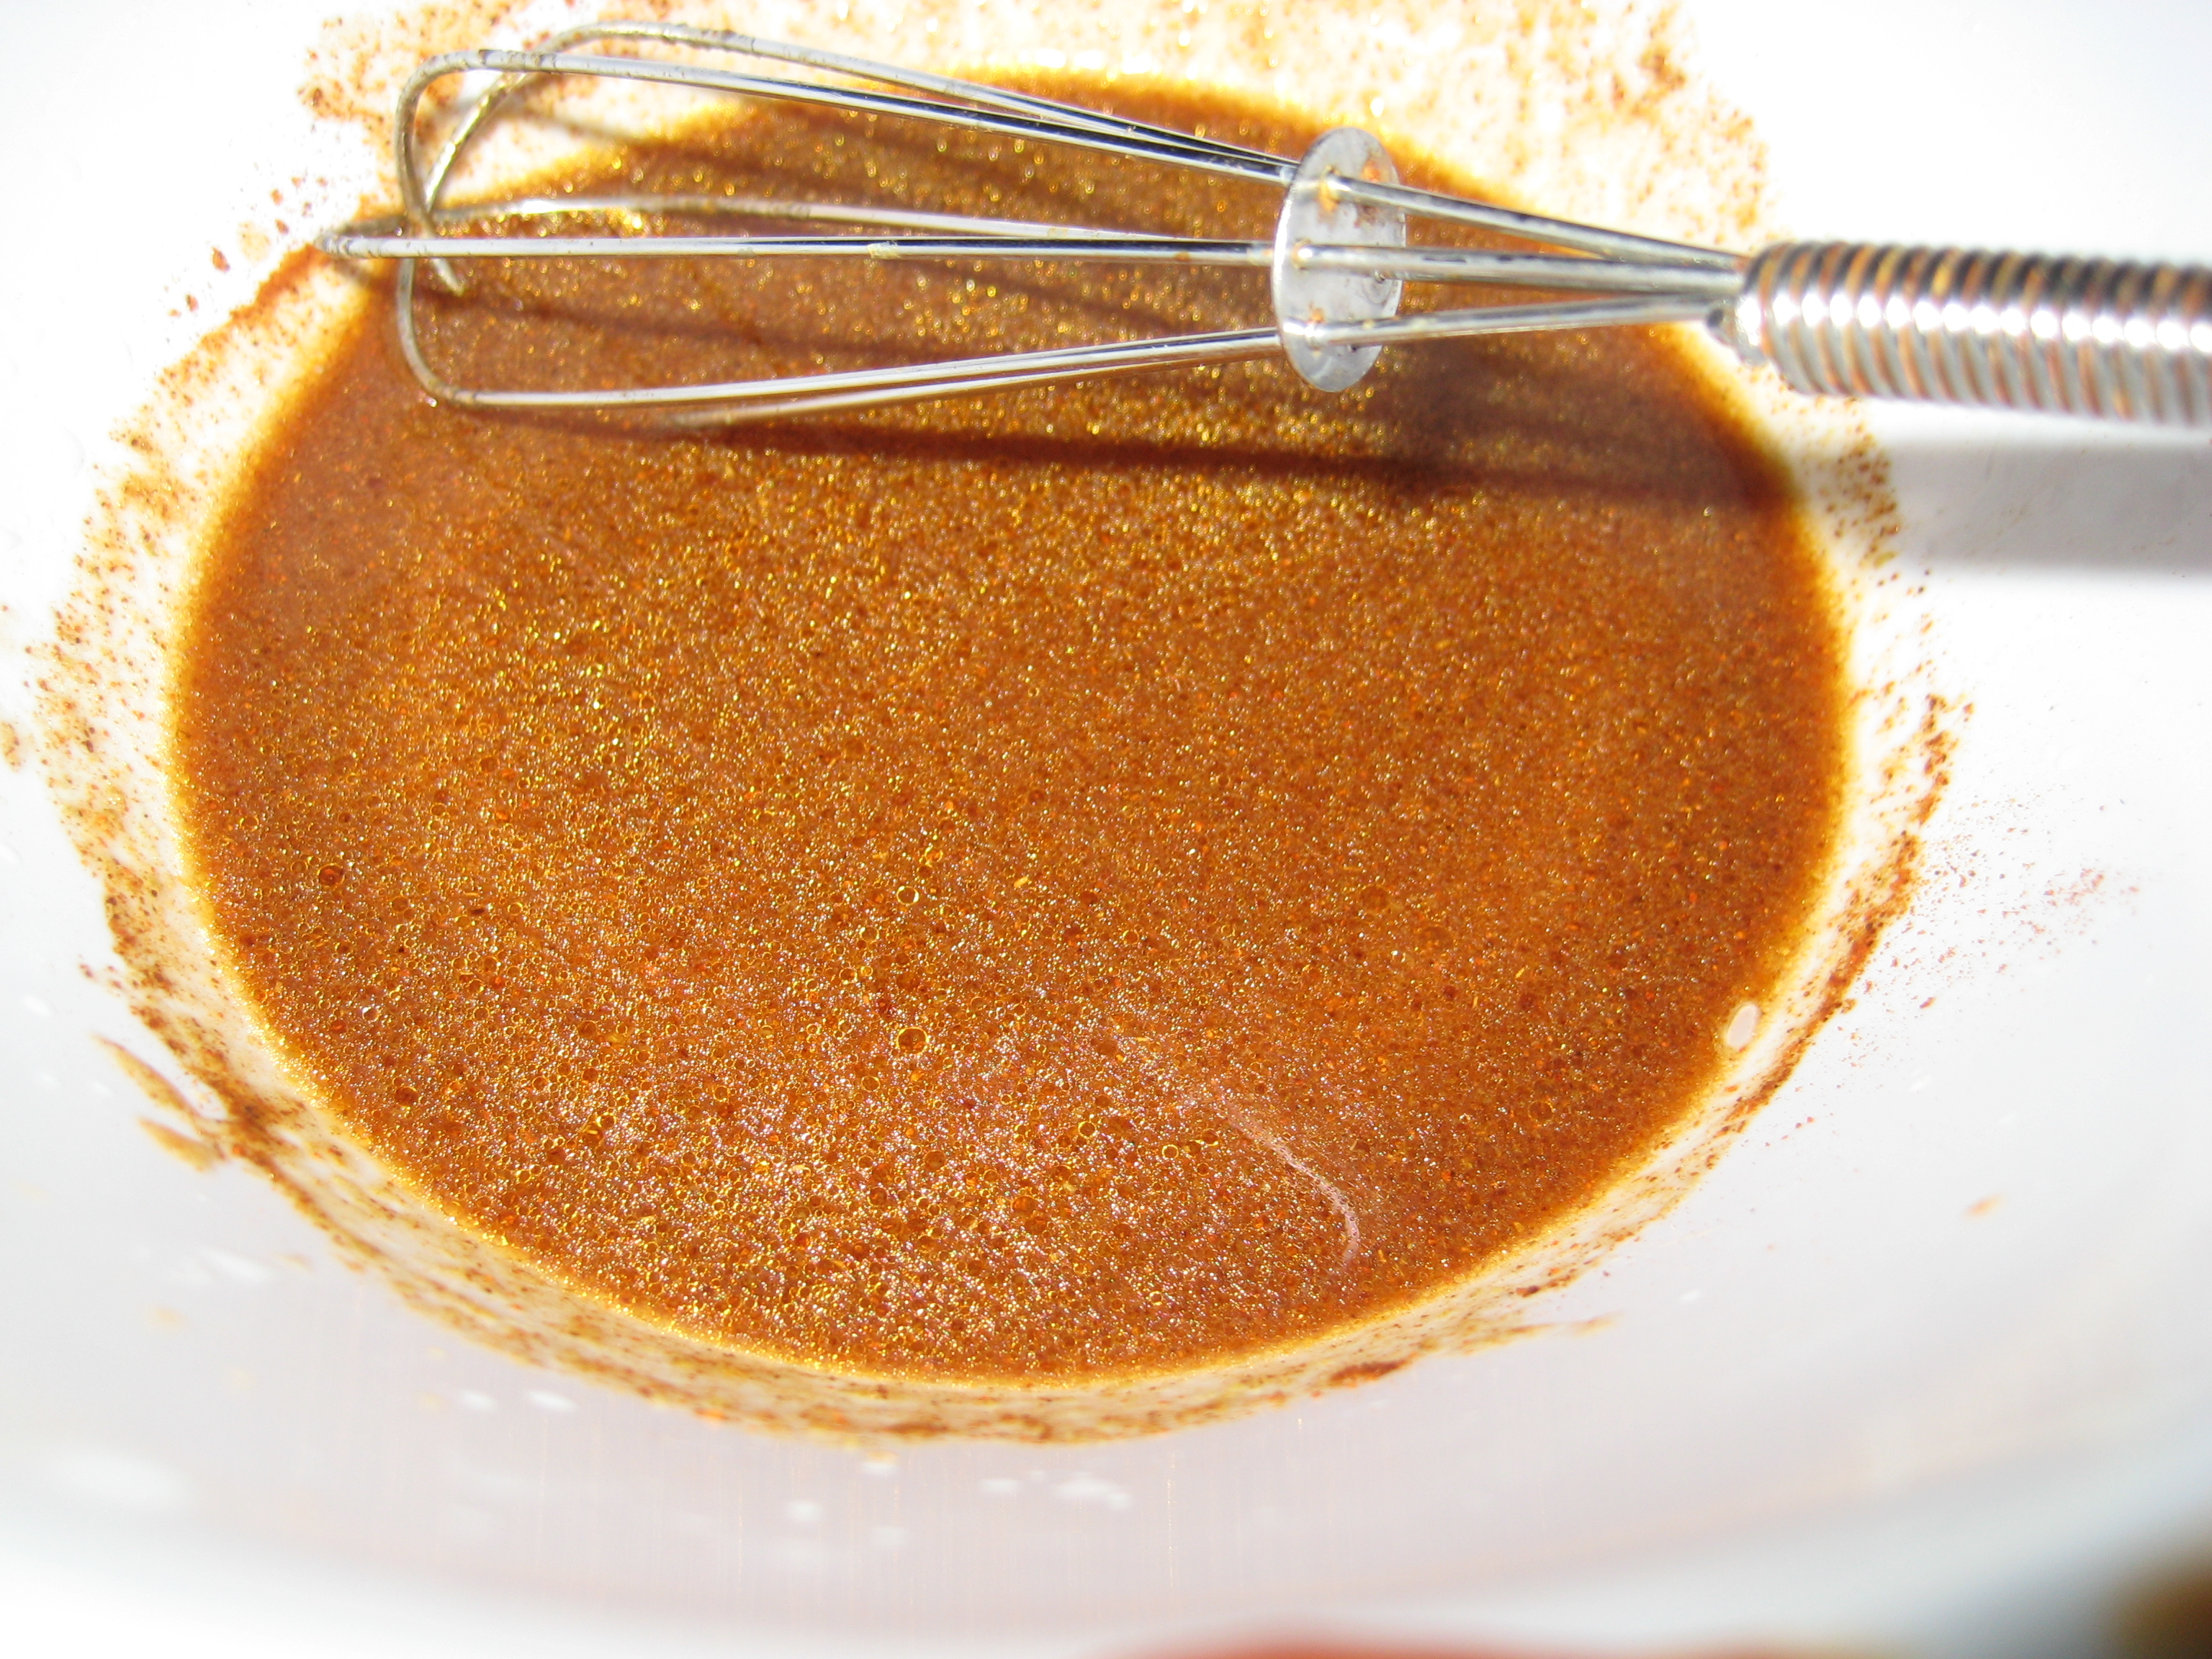 The chipotle sauce after being mixed.